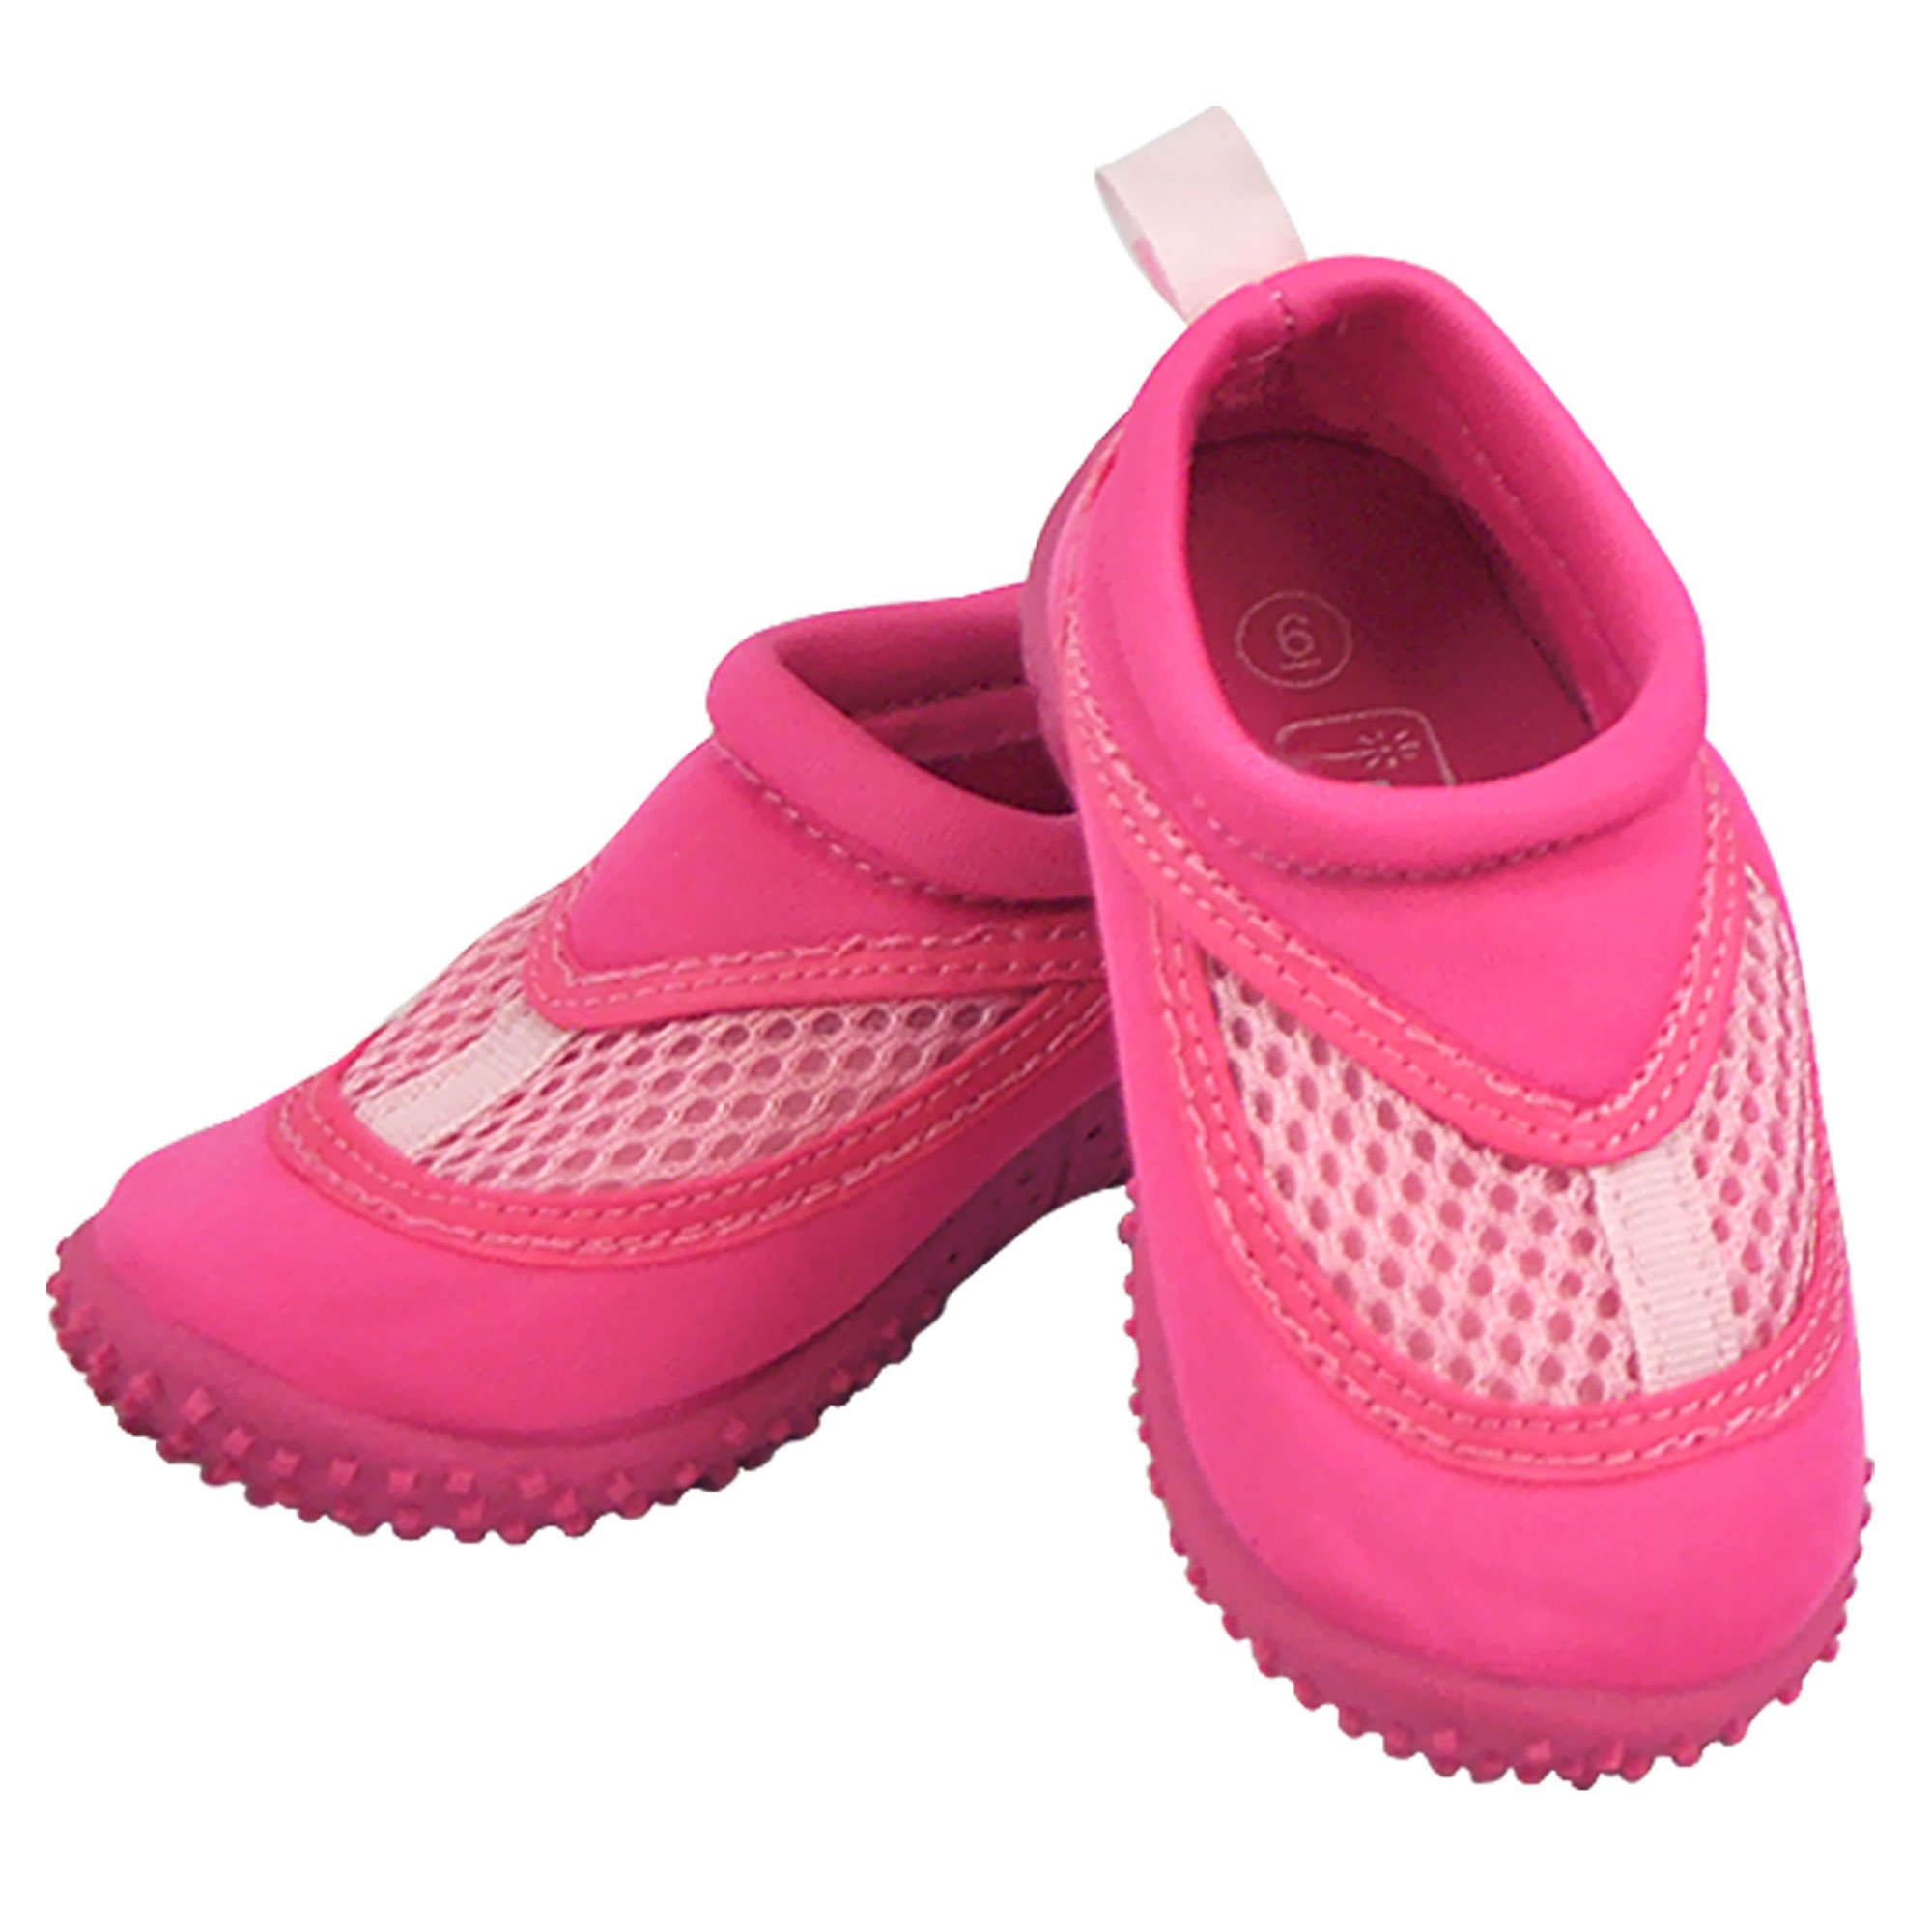 iplay Sand and Water Shoes for The Pool Beach - Non-Slip Sole- Pink - Size 4